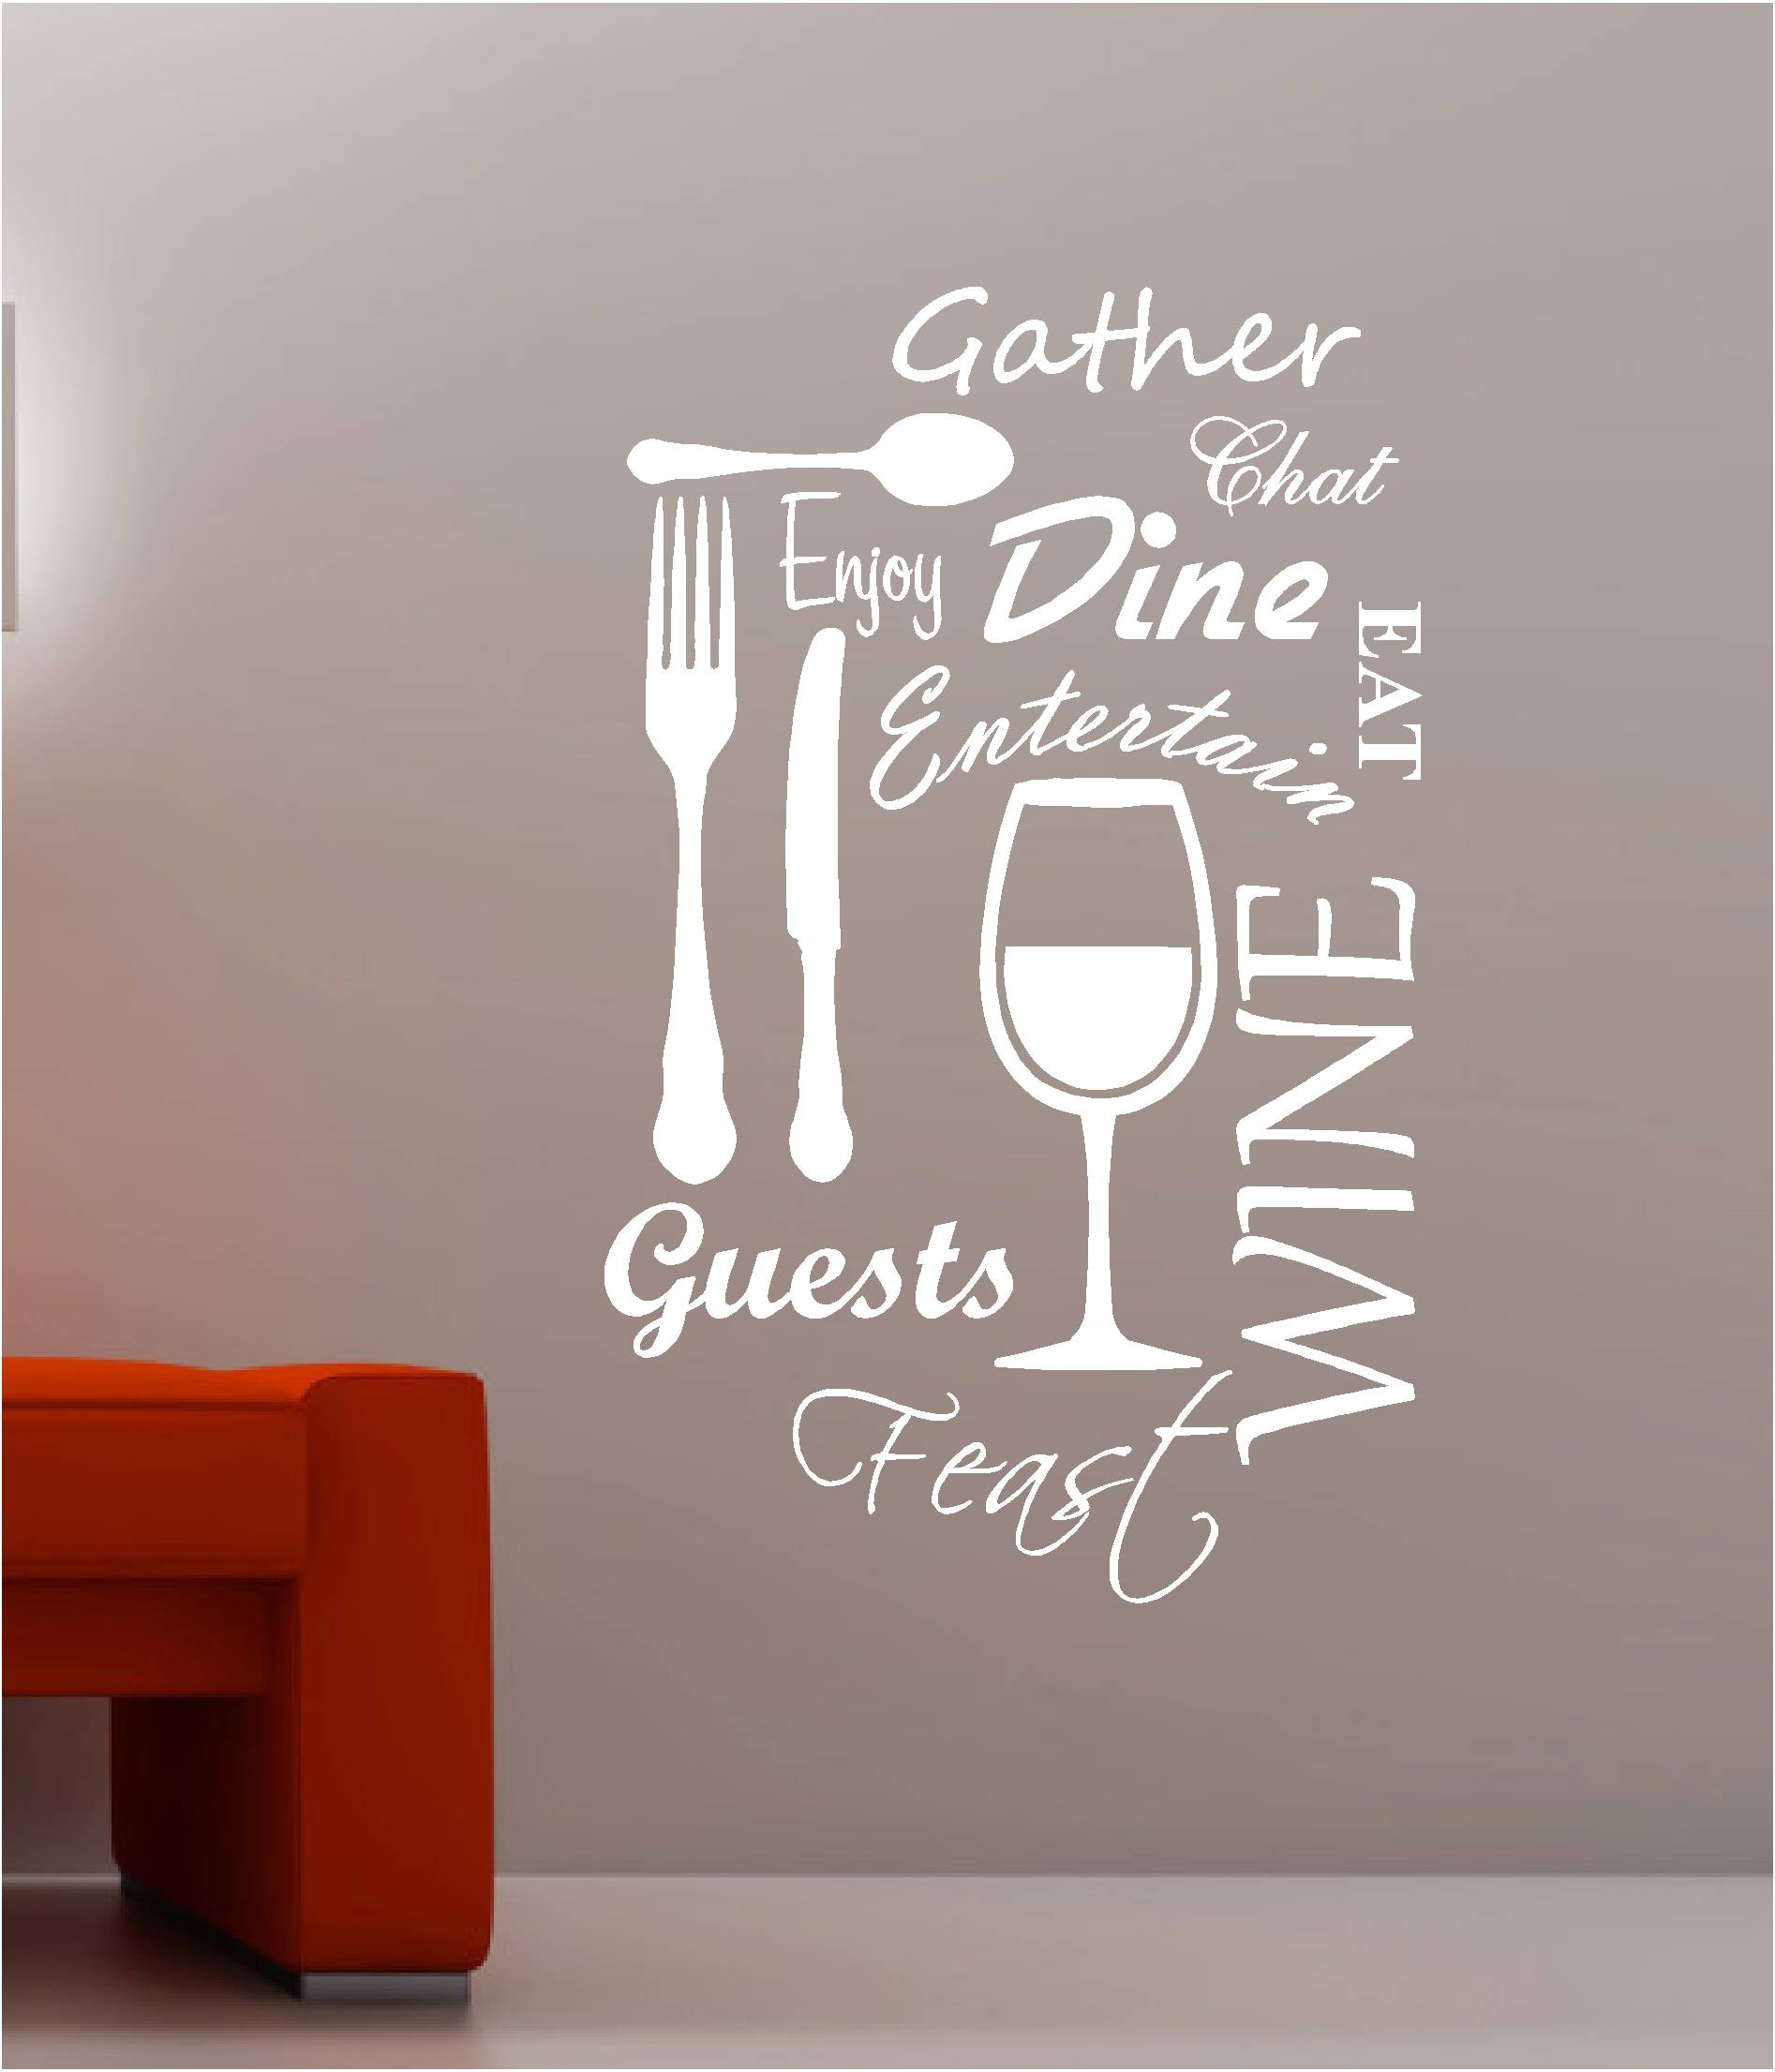 Kitchen : Wall Decor Affordable Wall Art Wall Decor Paintings Regarding Recent Kitchen And Dining Wall Art (View 18 of 25)